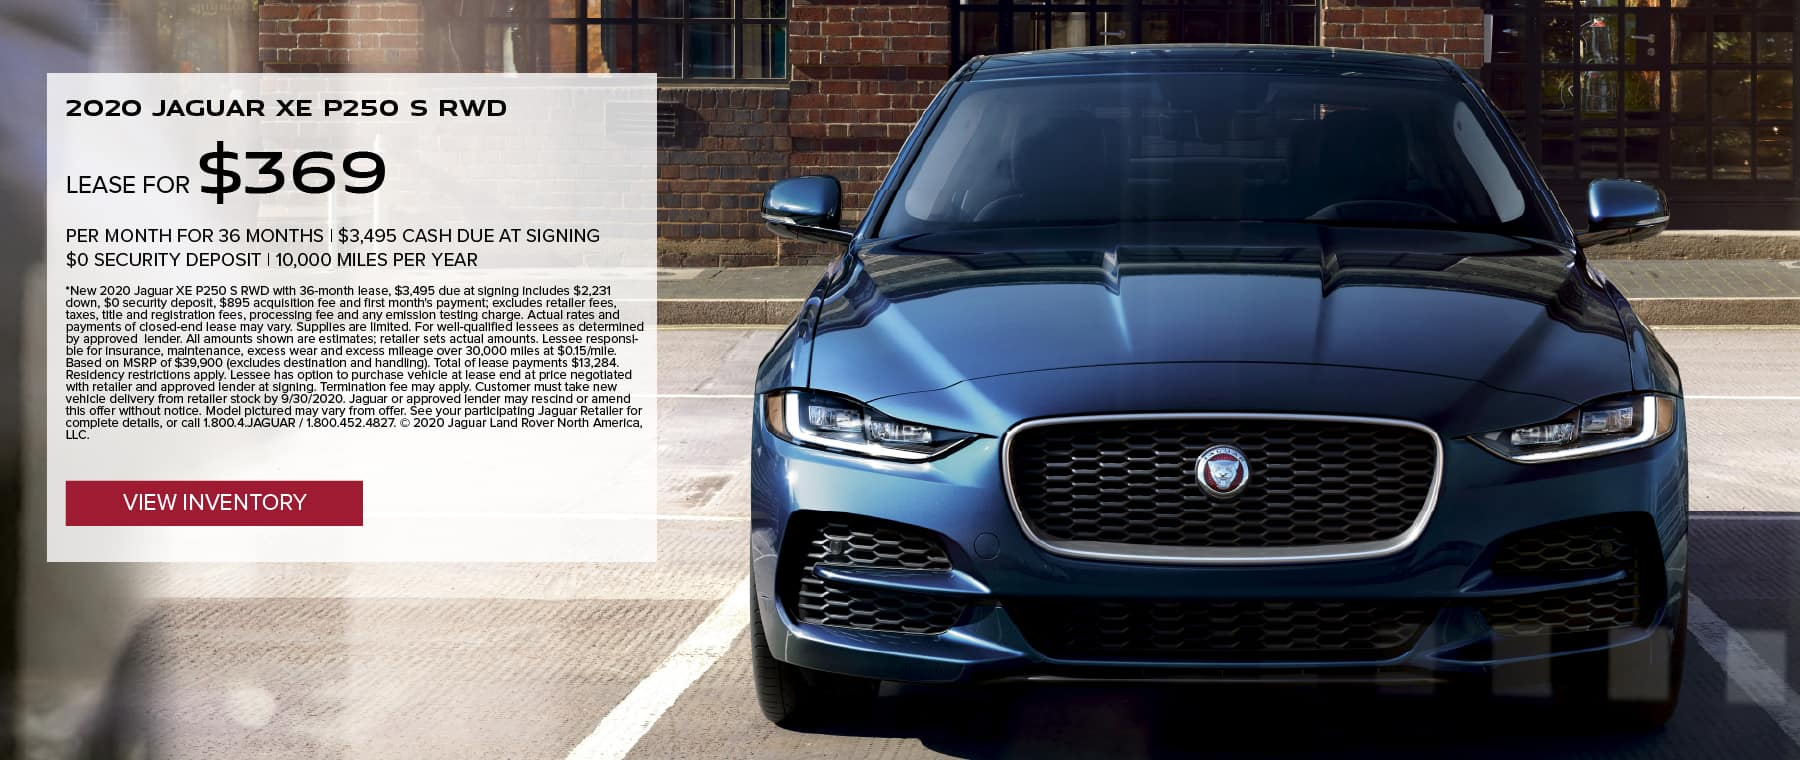 020 JAGUAR XE P250 S RWD. $369 PER MONTH. 36 MONTH LEASE TERM WITH $3,495 DUE AT SIGNING. $0 SECURITY DEPOSIT. 10,000 MILES PER YEAR. EXCLUDES RETAILER FEES, TAXES, TITLE AND REGISTRATION FEES, PROCESSING FEE AND ANY EMISSION TESTING CHARGE. OFFER ENDS 9/30/2020. VIEW INVENTORY. BLUE JAGUAR XE PARKED IN FRONT OF SHOP WINDOW.